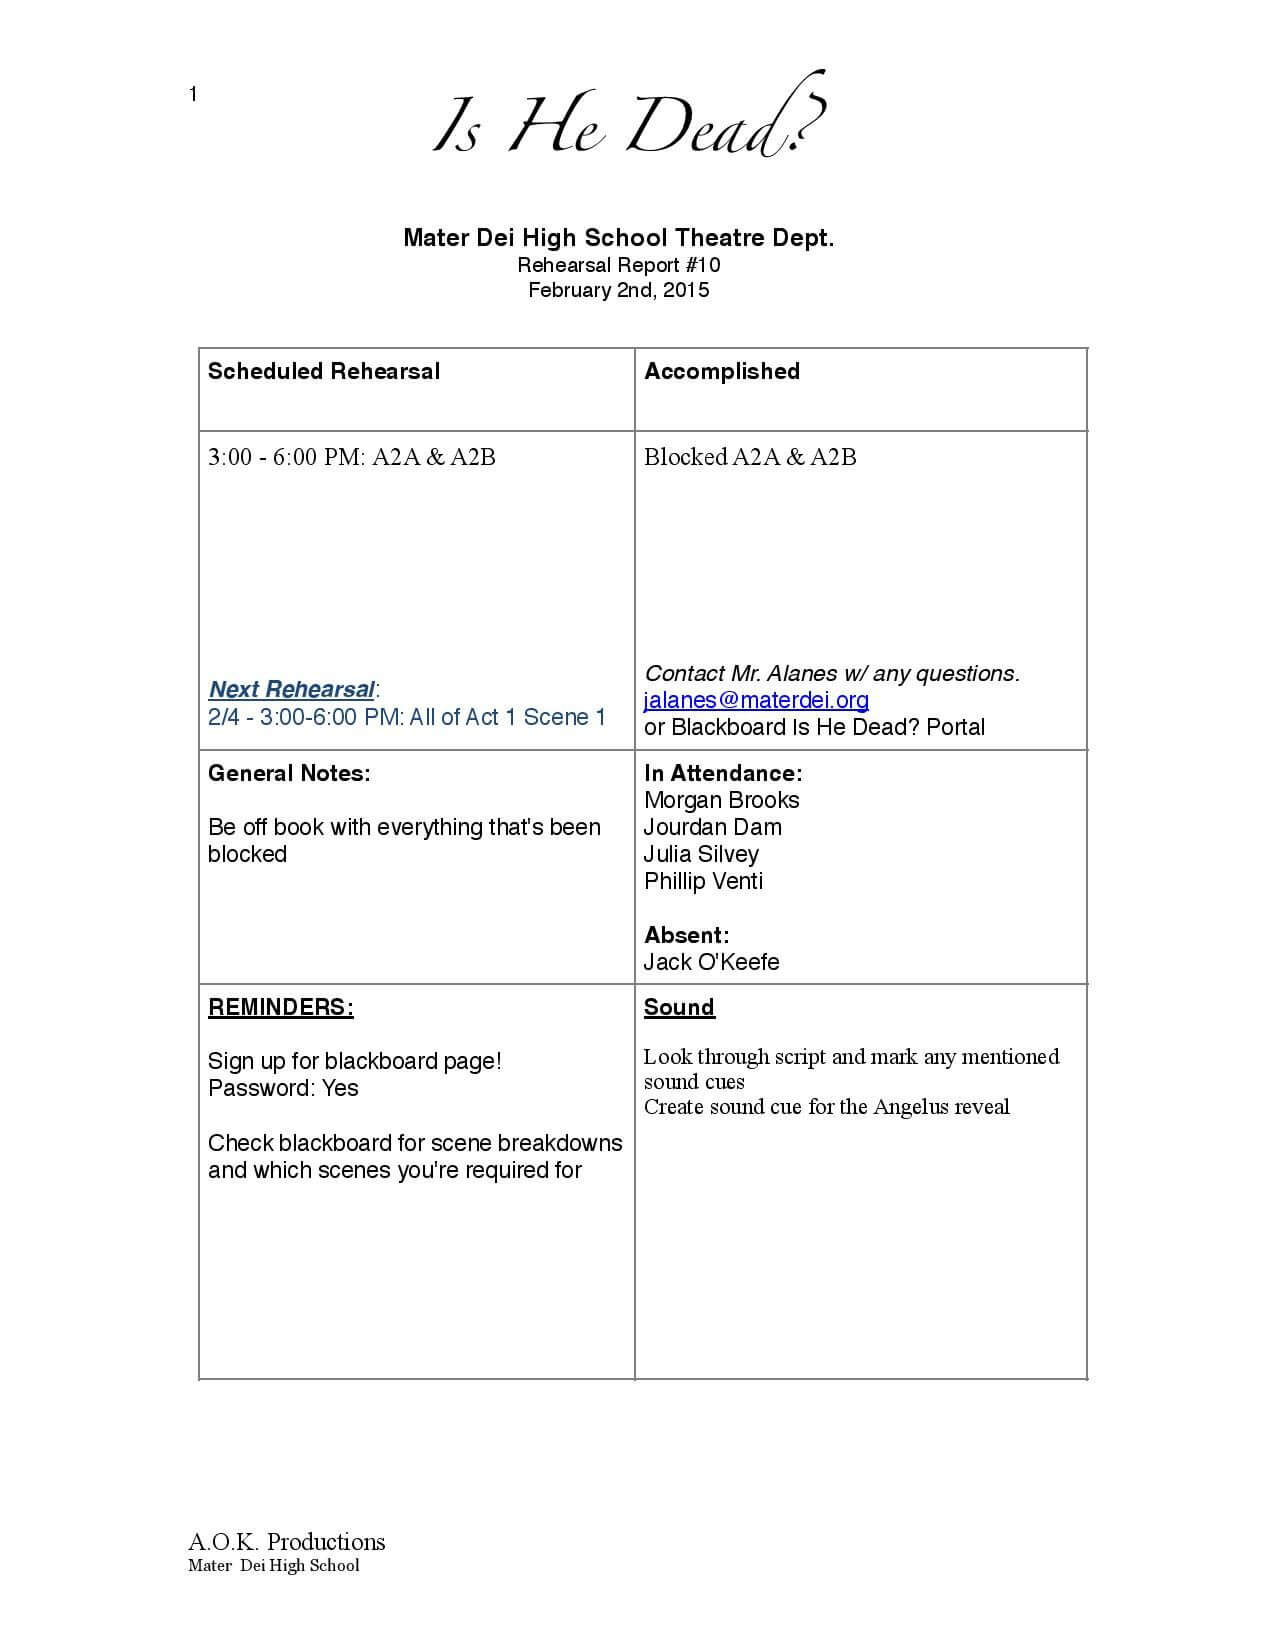 Page 1 Of Is He Dead? Rehearsal Report Example   Little Shop With Rehearsal Report Template